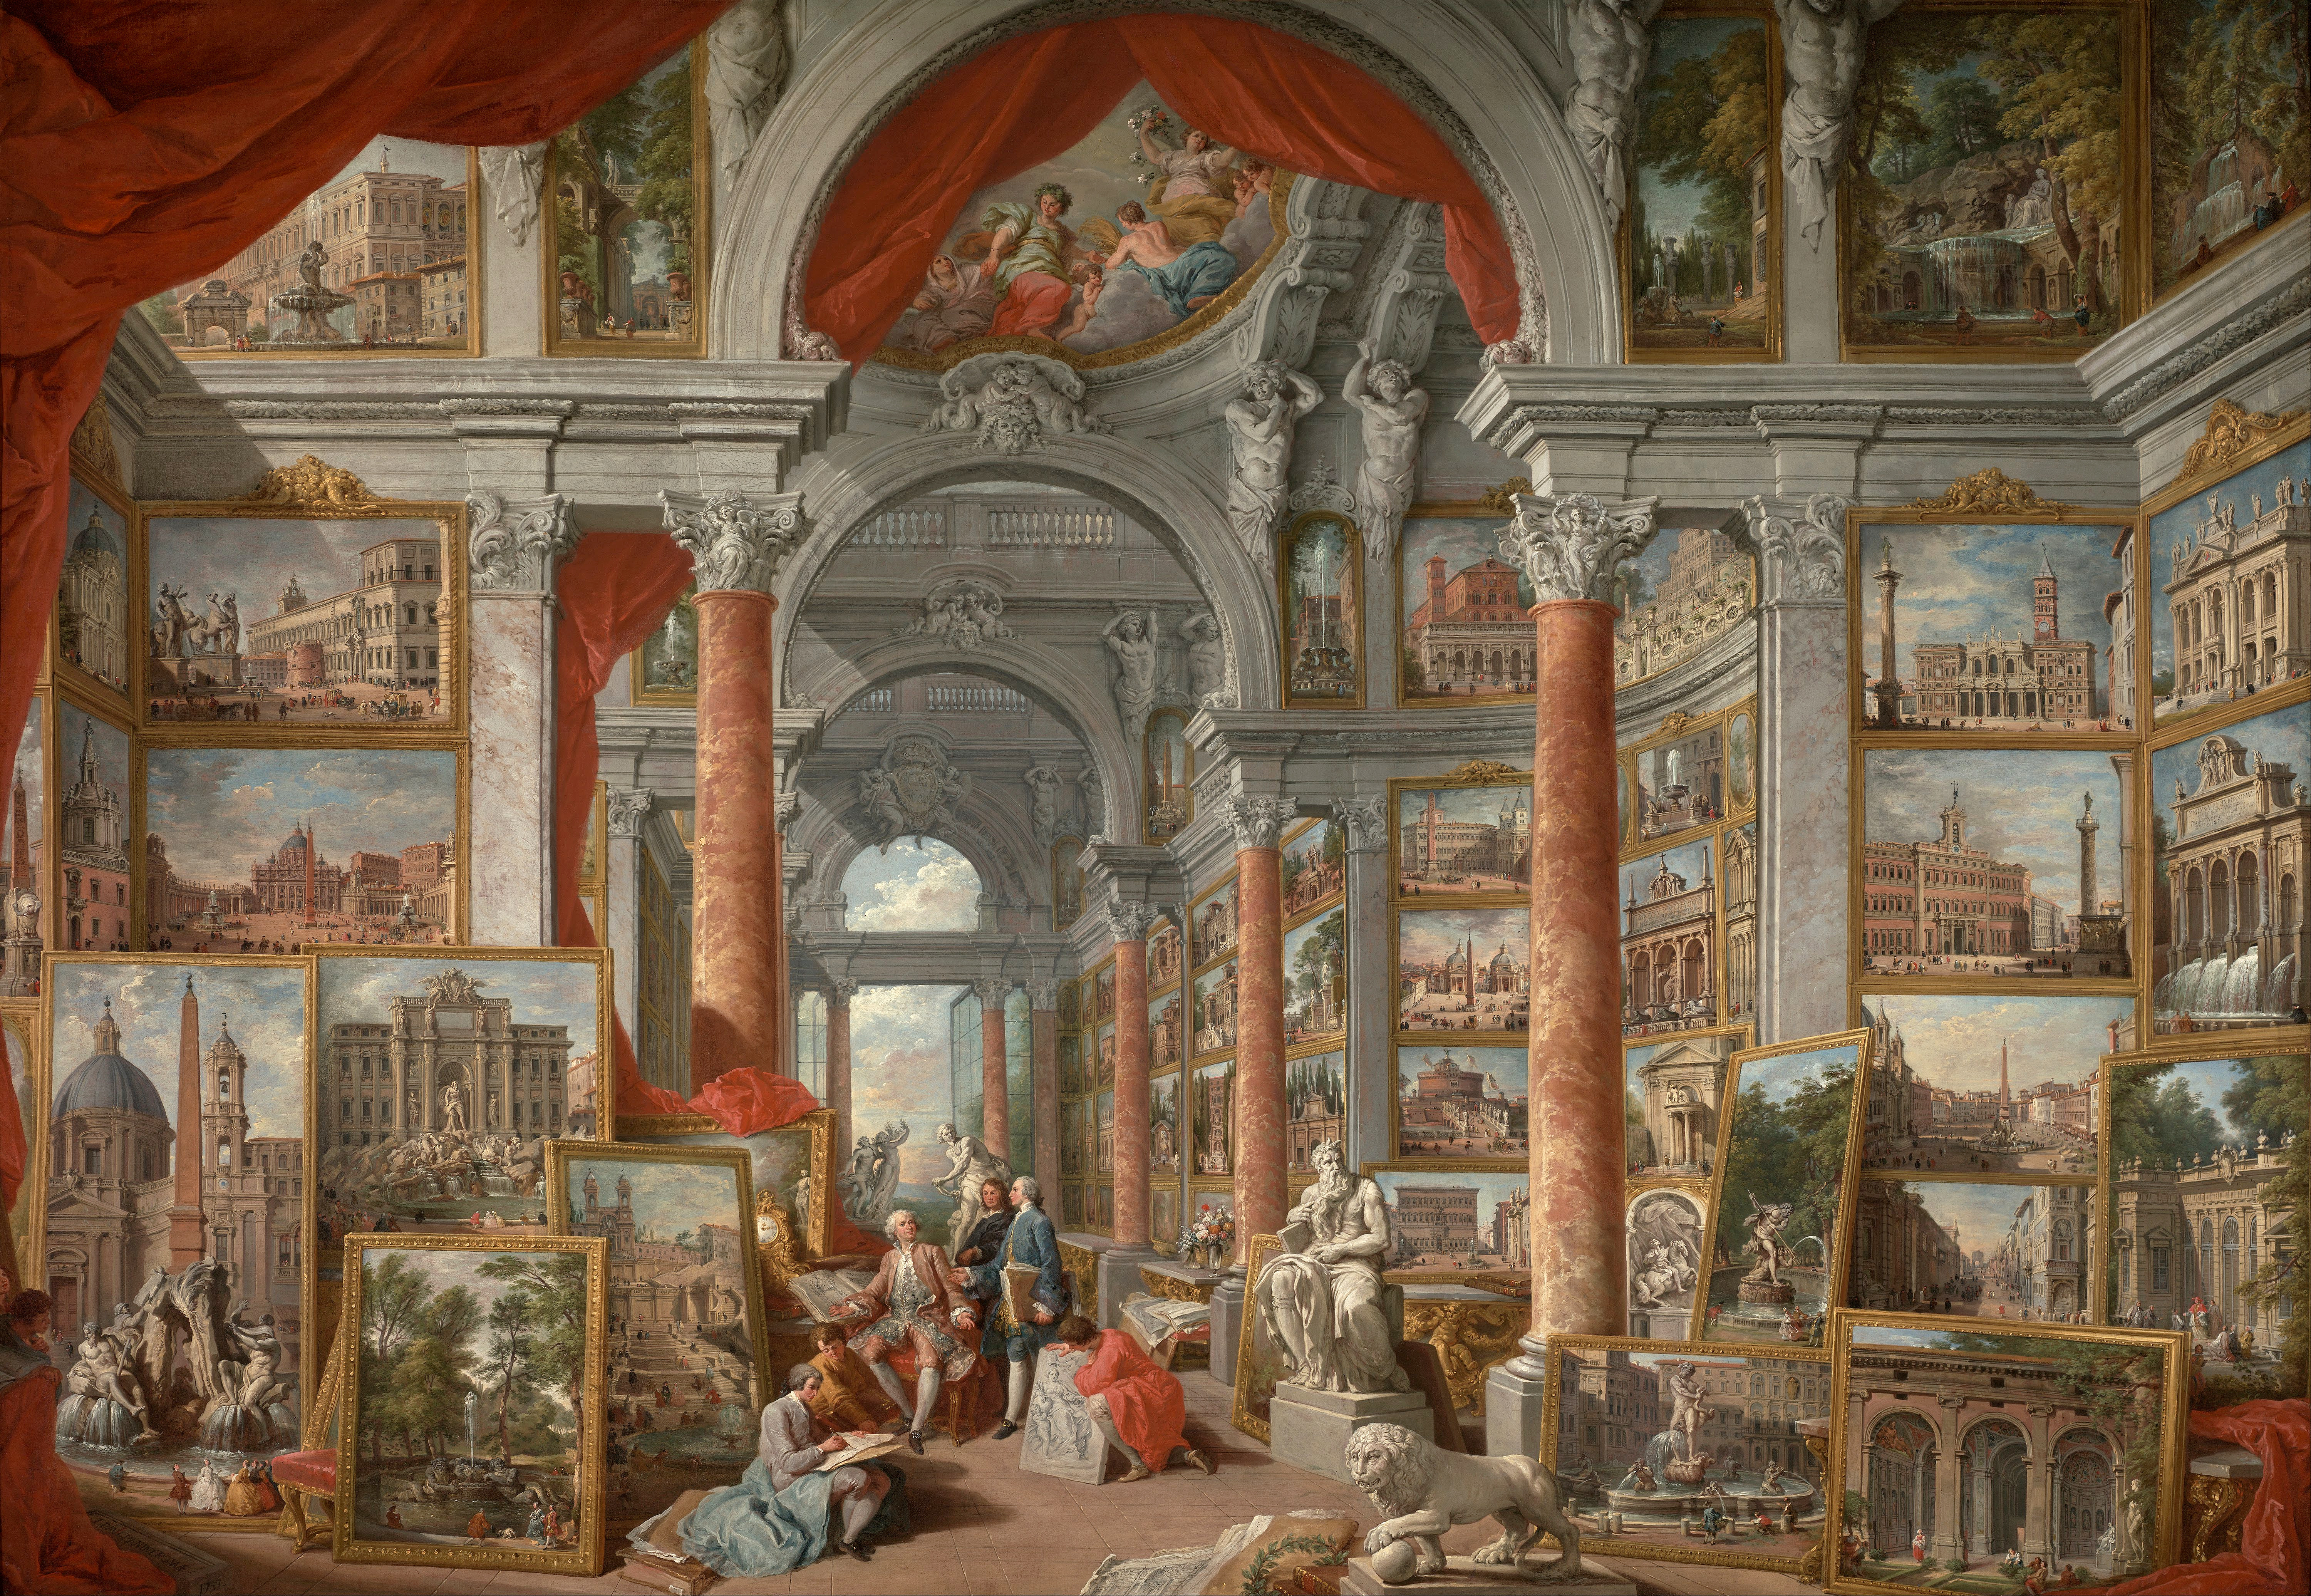 https://upload.wikimedia.org/wikipedia/commons/0/0c/Giovanni_Paolo_Pannini_-_Picture_Gallery_with_Views_of_Modern_Rome_-_Google_Art_Project.jpg